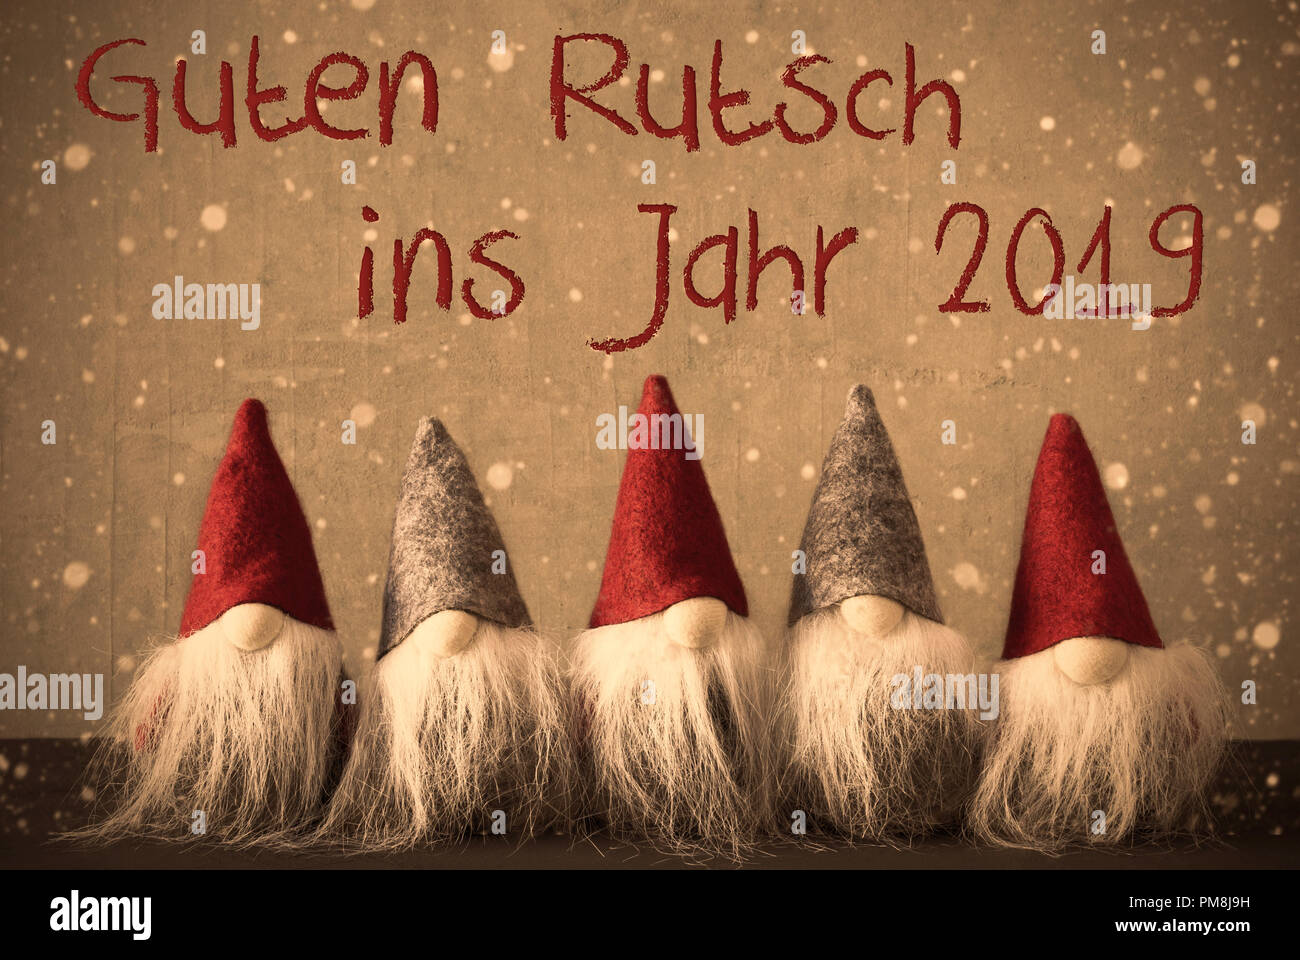 gnomes with german guten rutsch ins jarh 2019 means happy new year background with snowflakes and filter with retro style